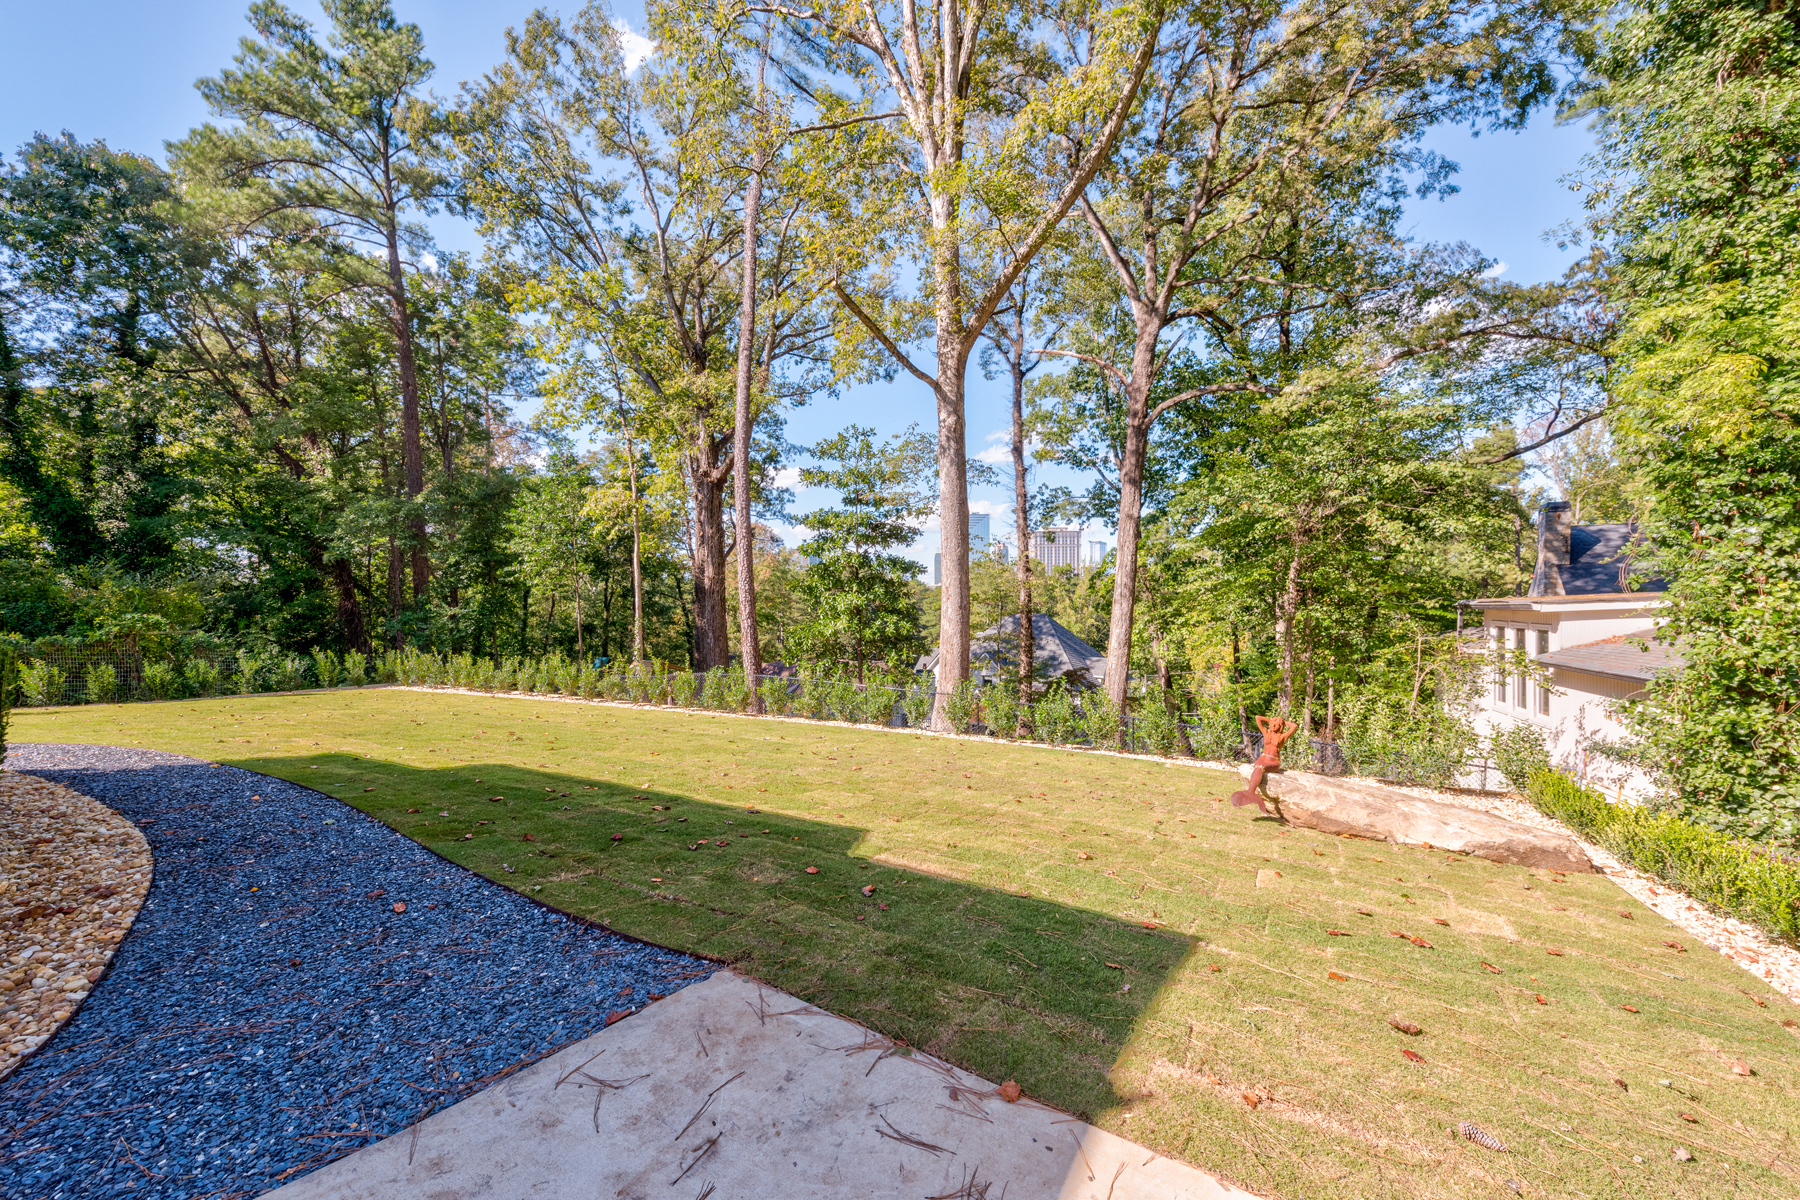 Additional photo for property listing at Fall In Love With The Skyline View From This Rare Flat Walk Out Backyard 1084 Roxboro Drive NE Atlanta, Georgia 30324 United States